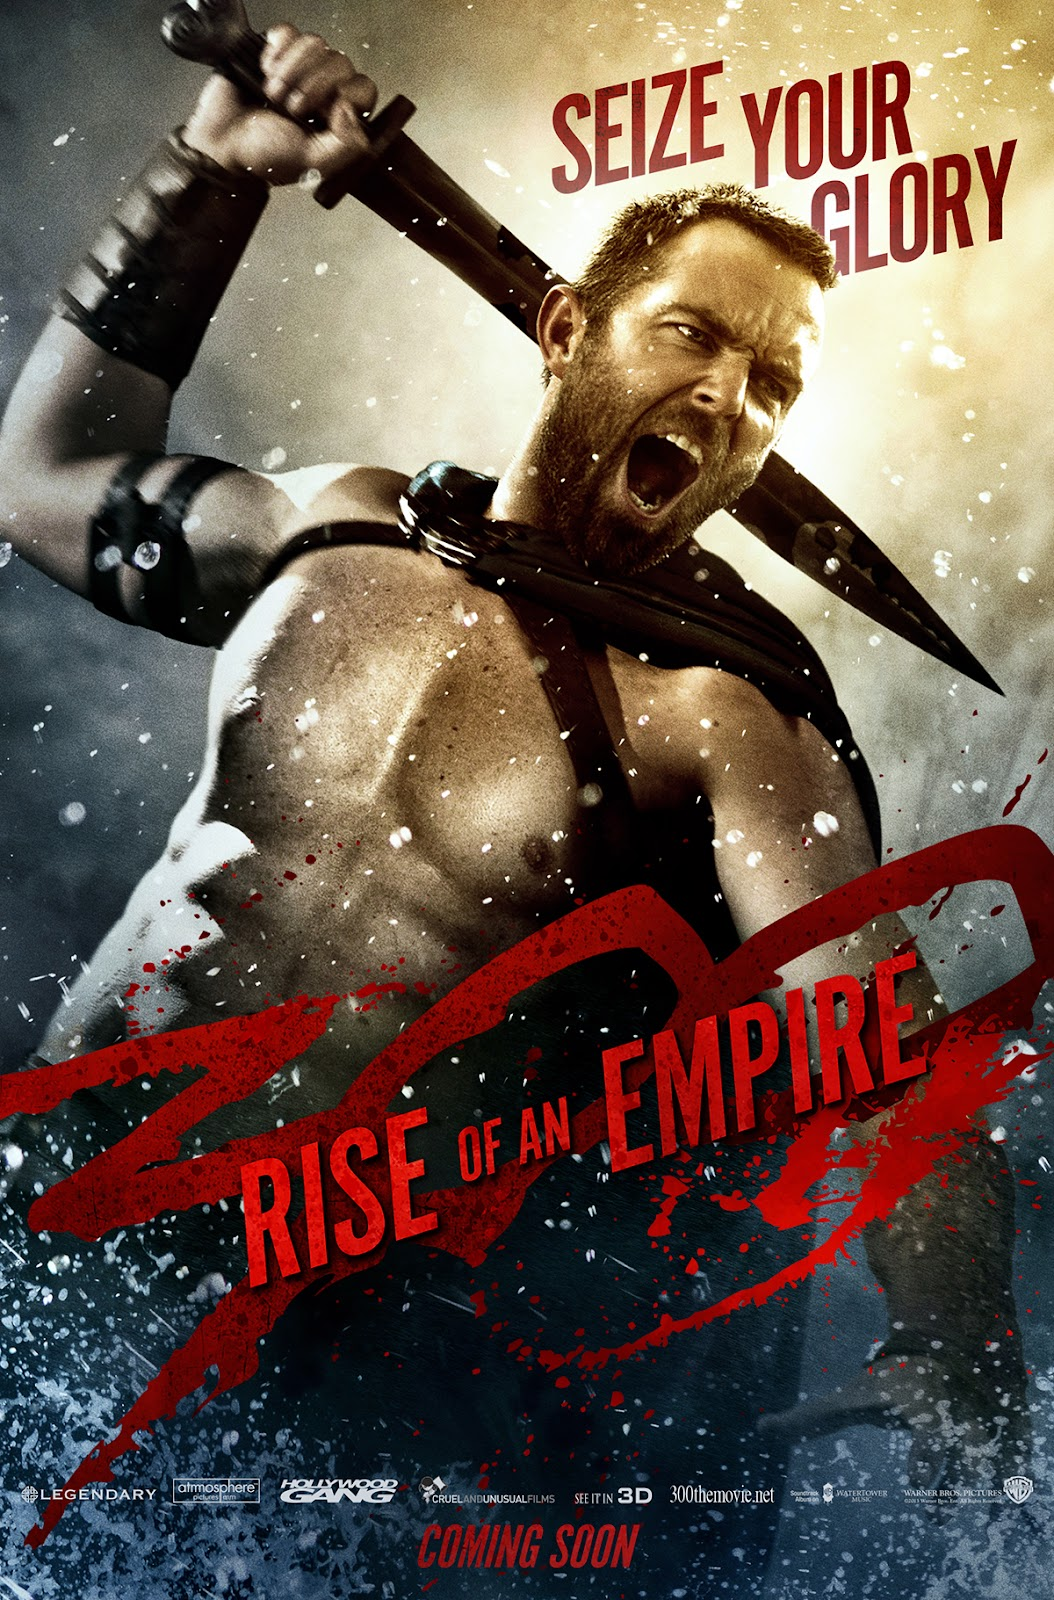 300: RISE OF AN EMPIRE Sullivan Stapleton as Themistocles - SEIZE YOUR GLORY!